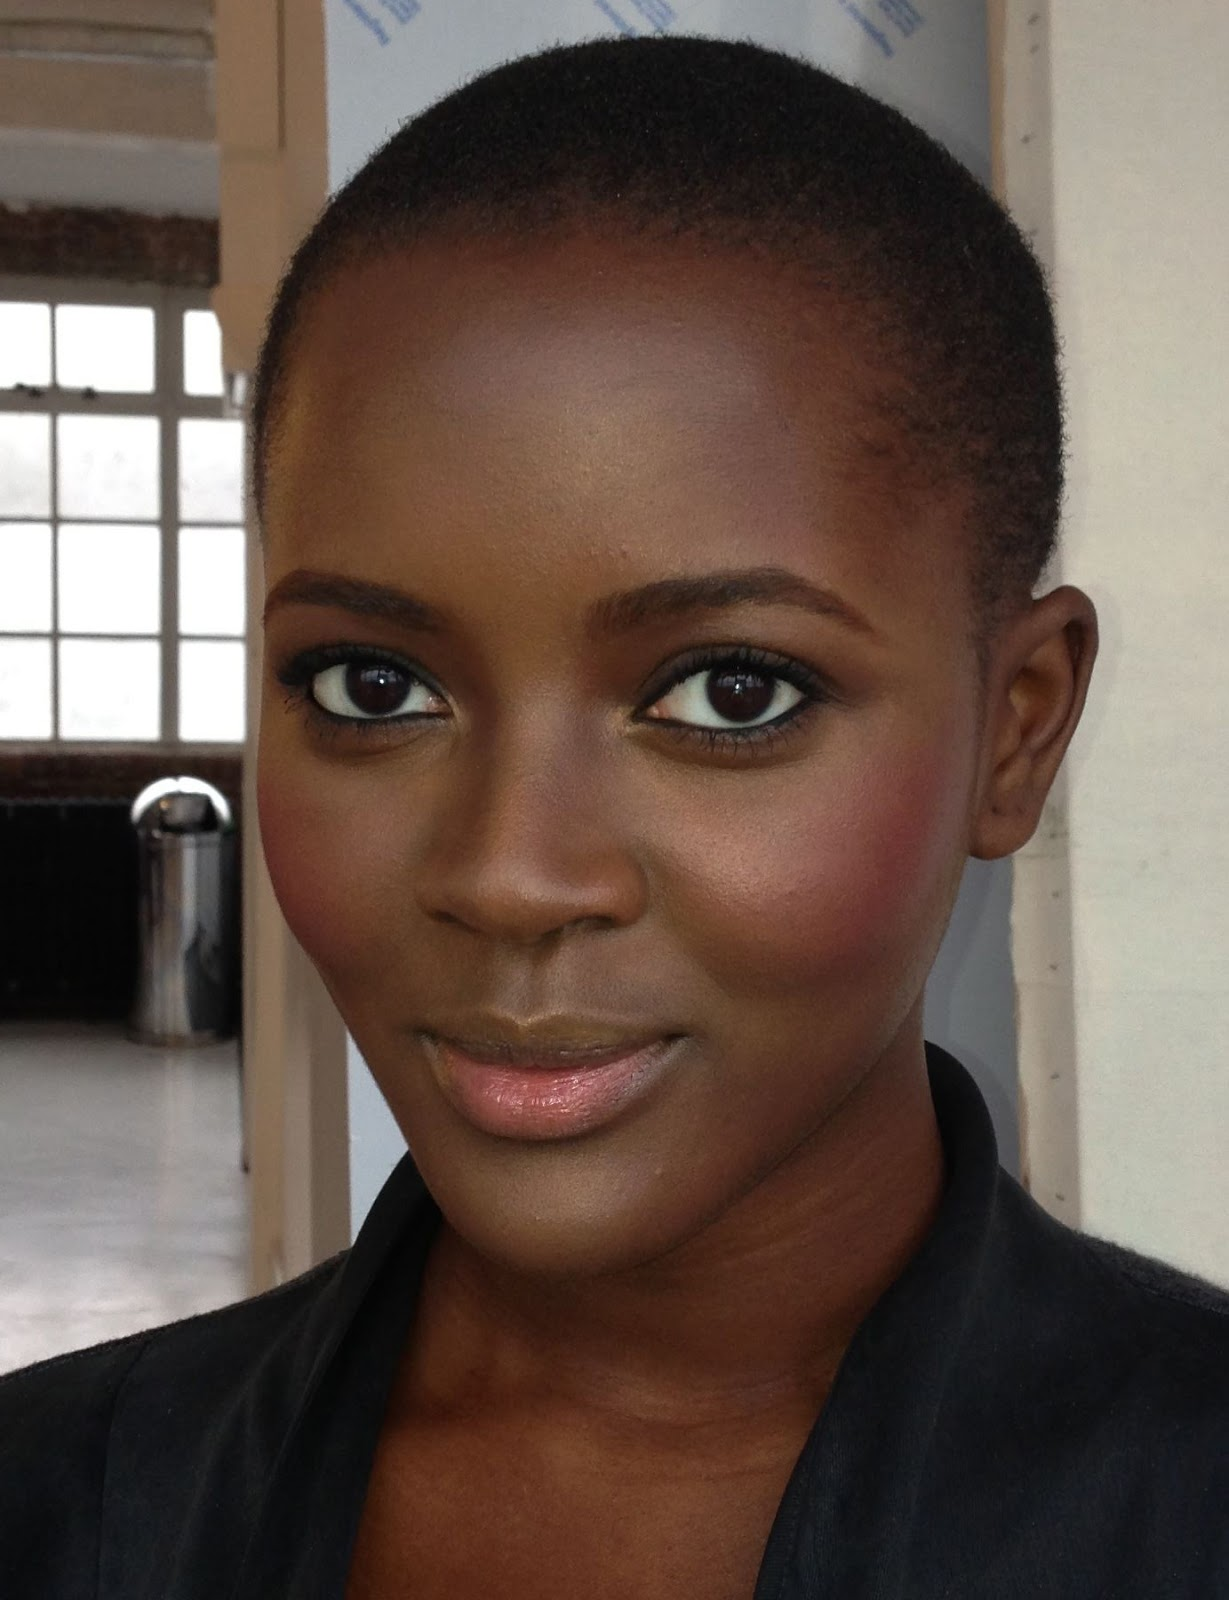 Simple Make-Up For Dark Skin